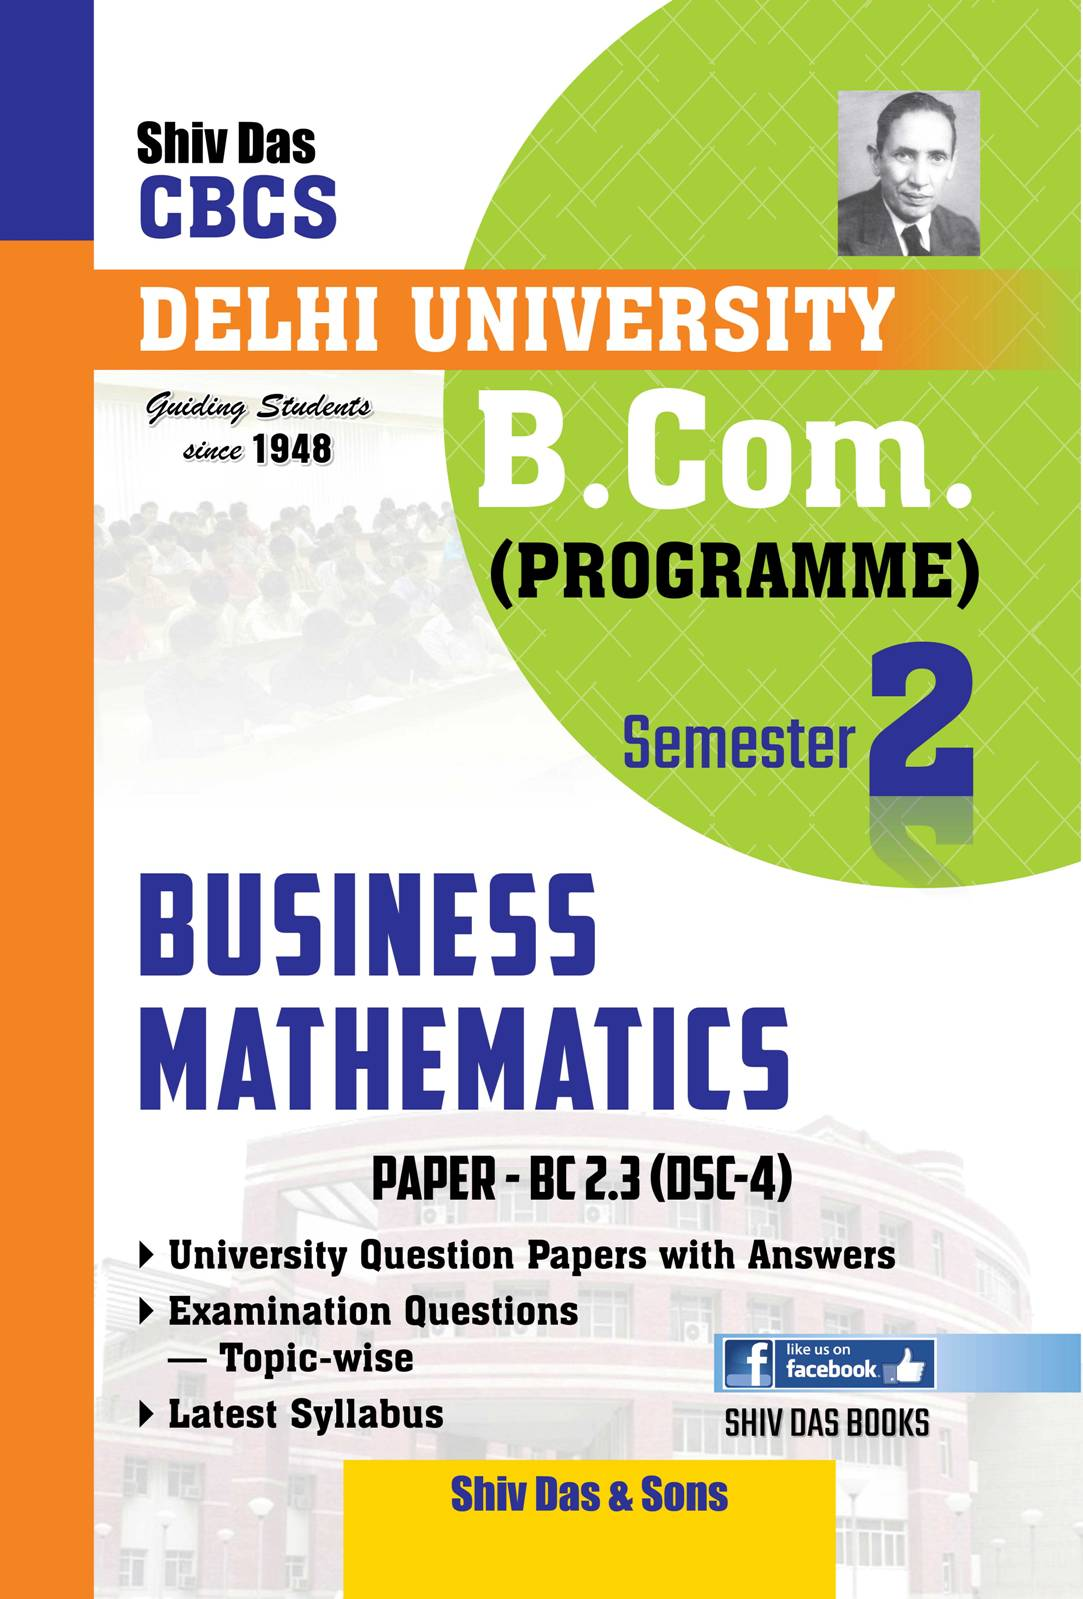 Business Mathematics for B.Com Prog Semester-2 for Delhi University by Shiv Das